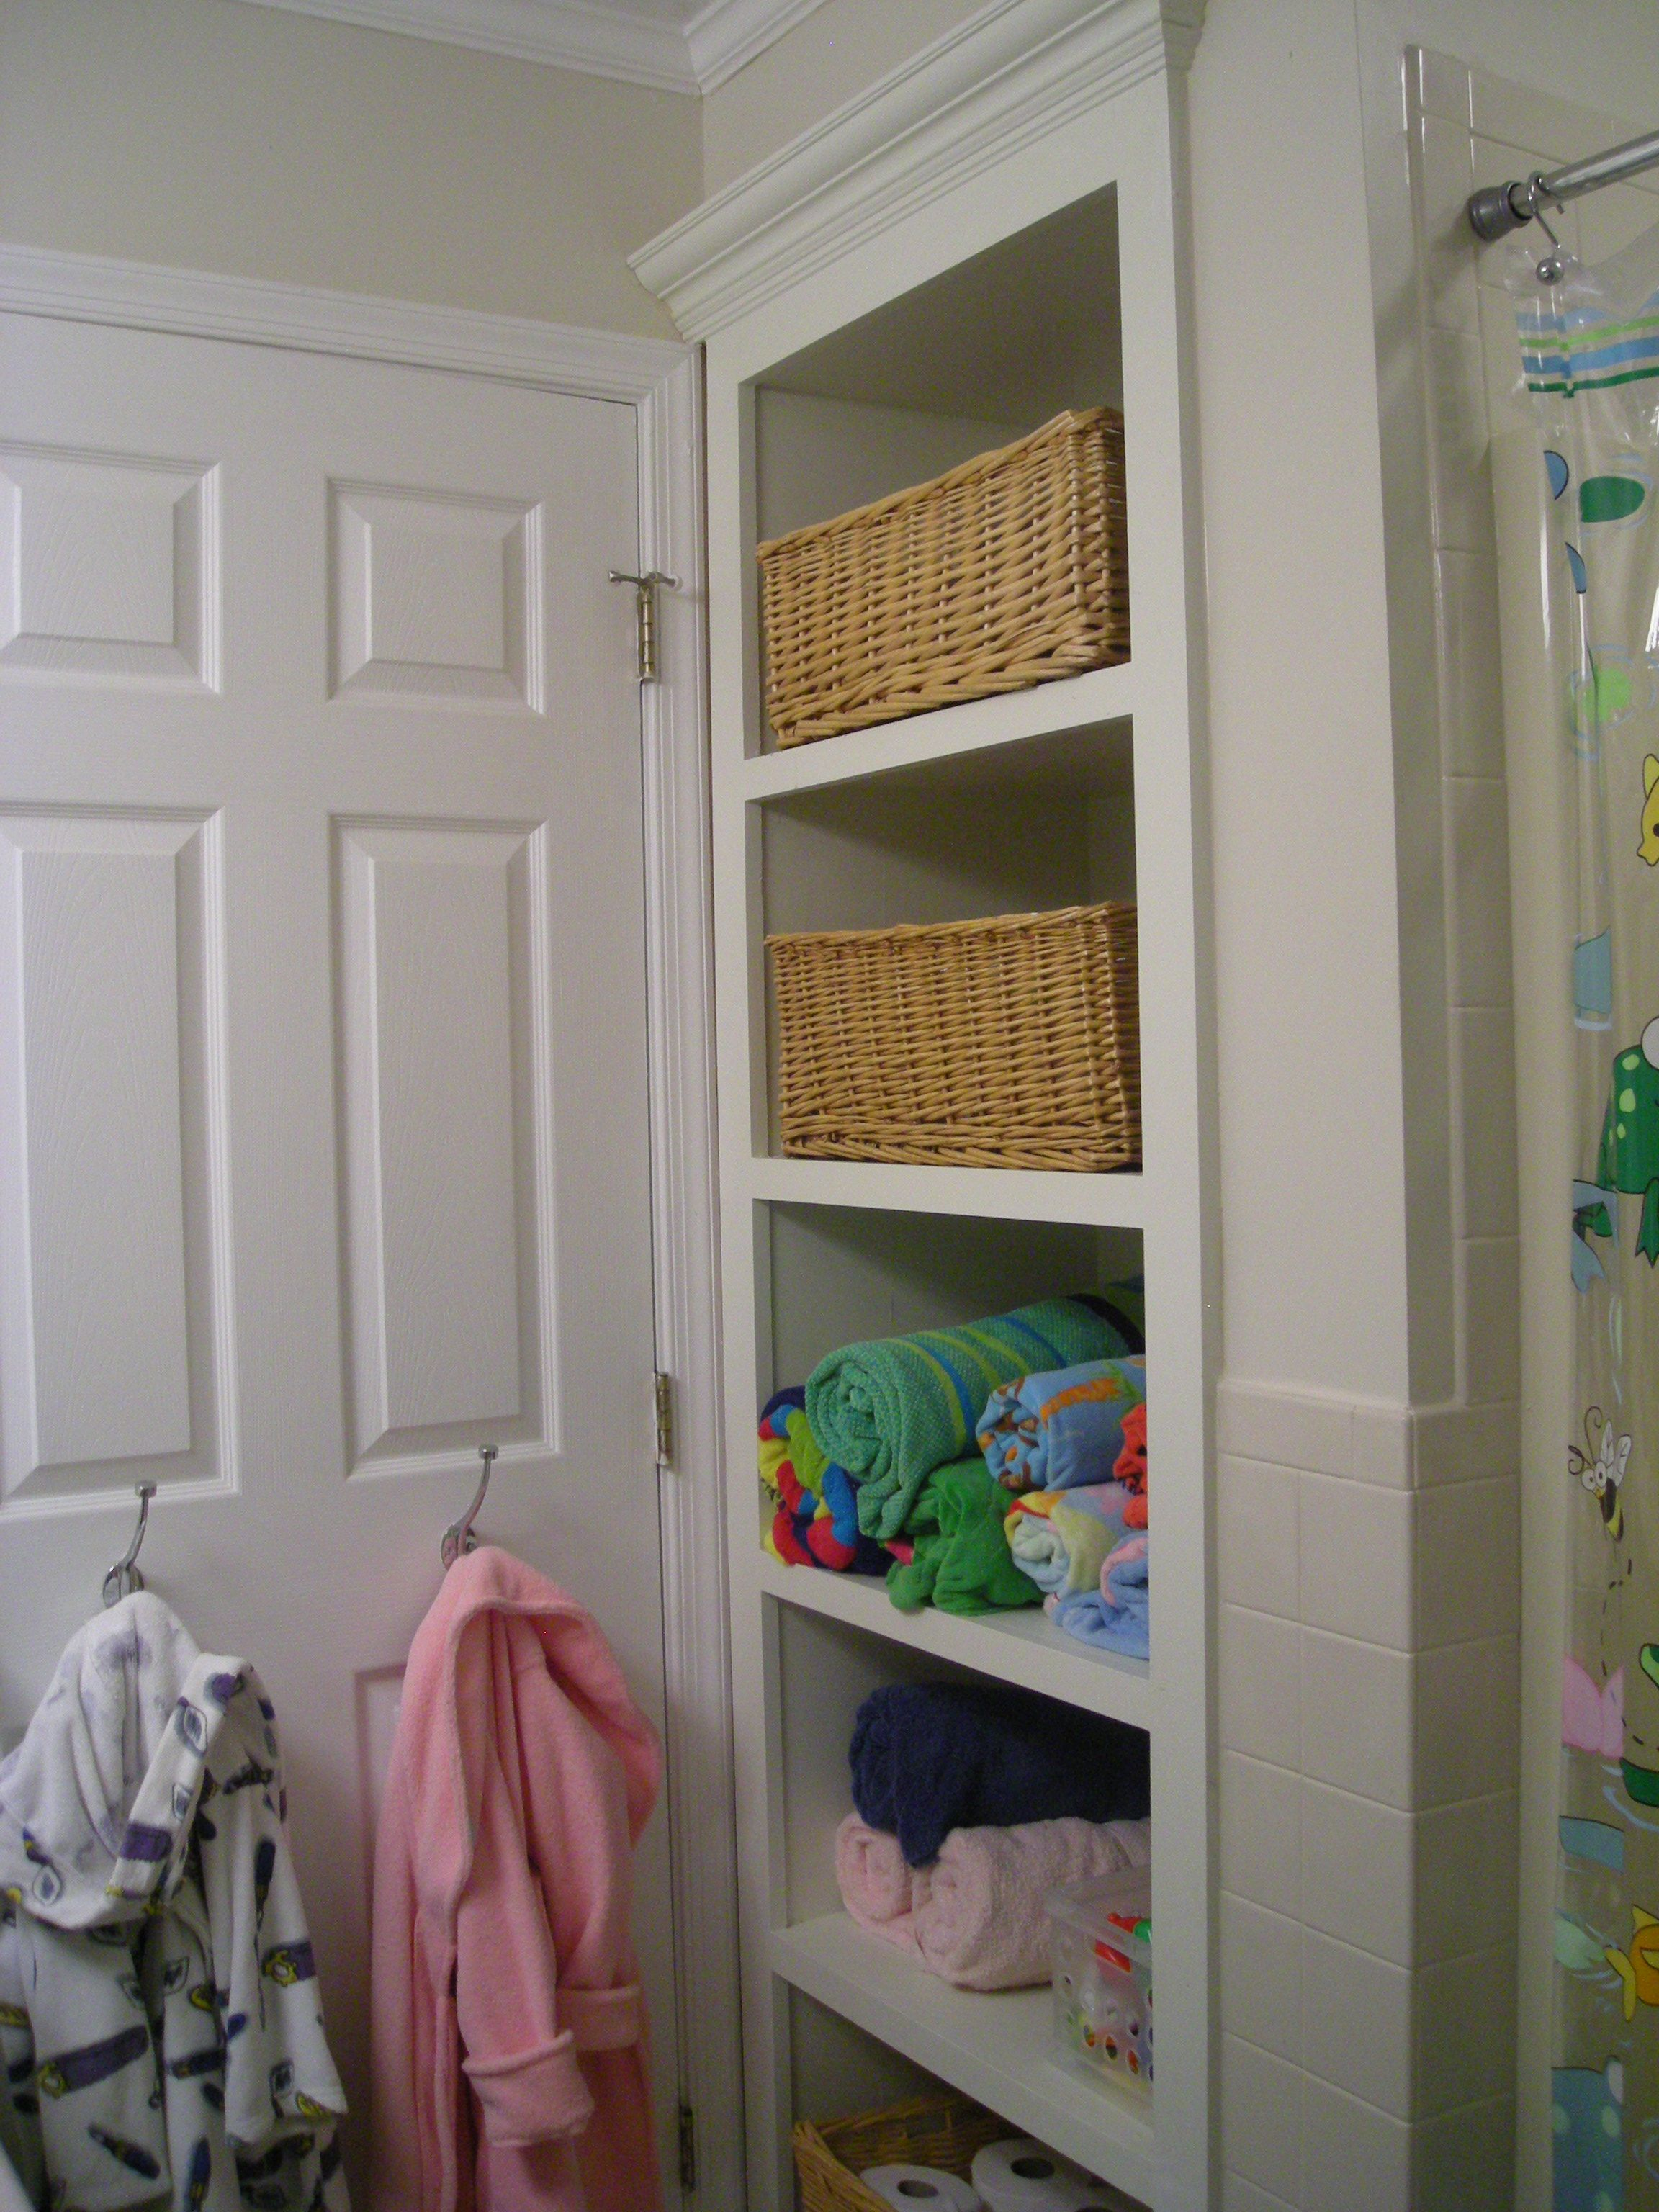 Remodel Bathroom Linen Closet kid's bathroom. replaced the linen closet with open shelving for